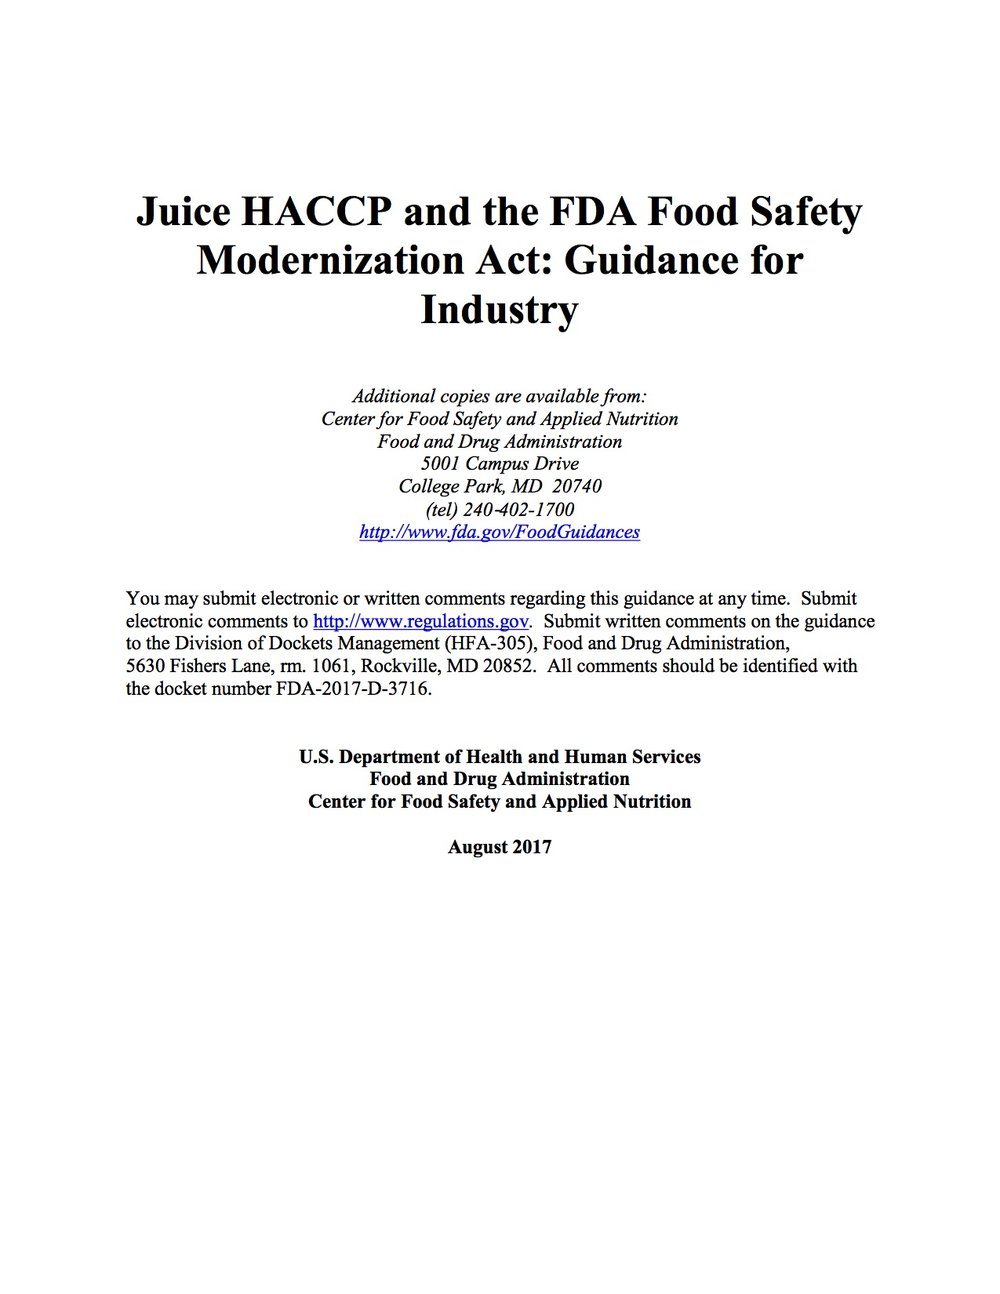 thumbnail-juice-haccp-guidance-doc.jpg